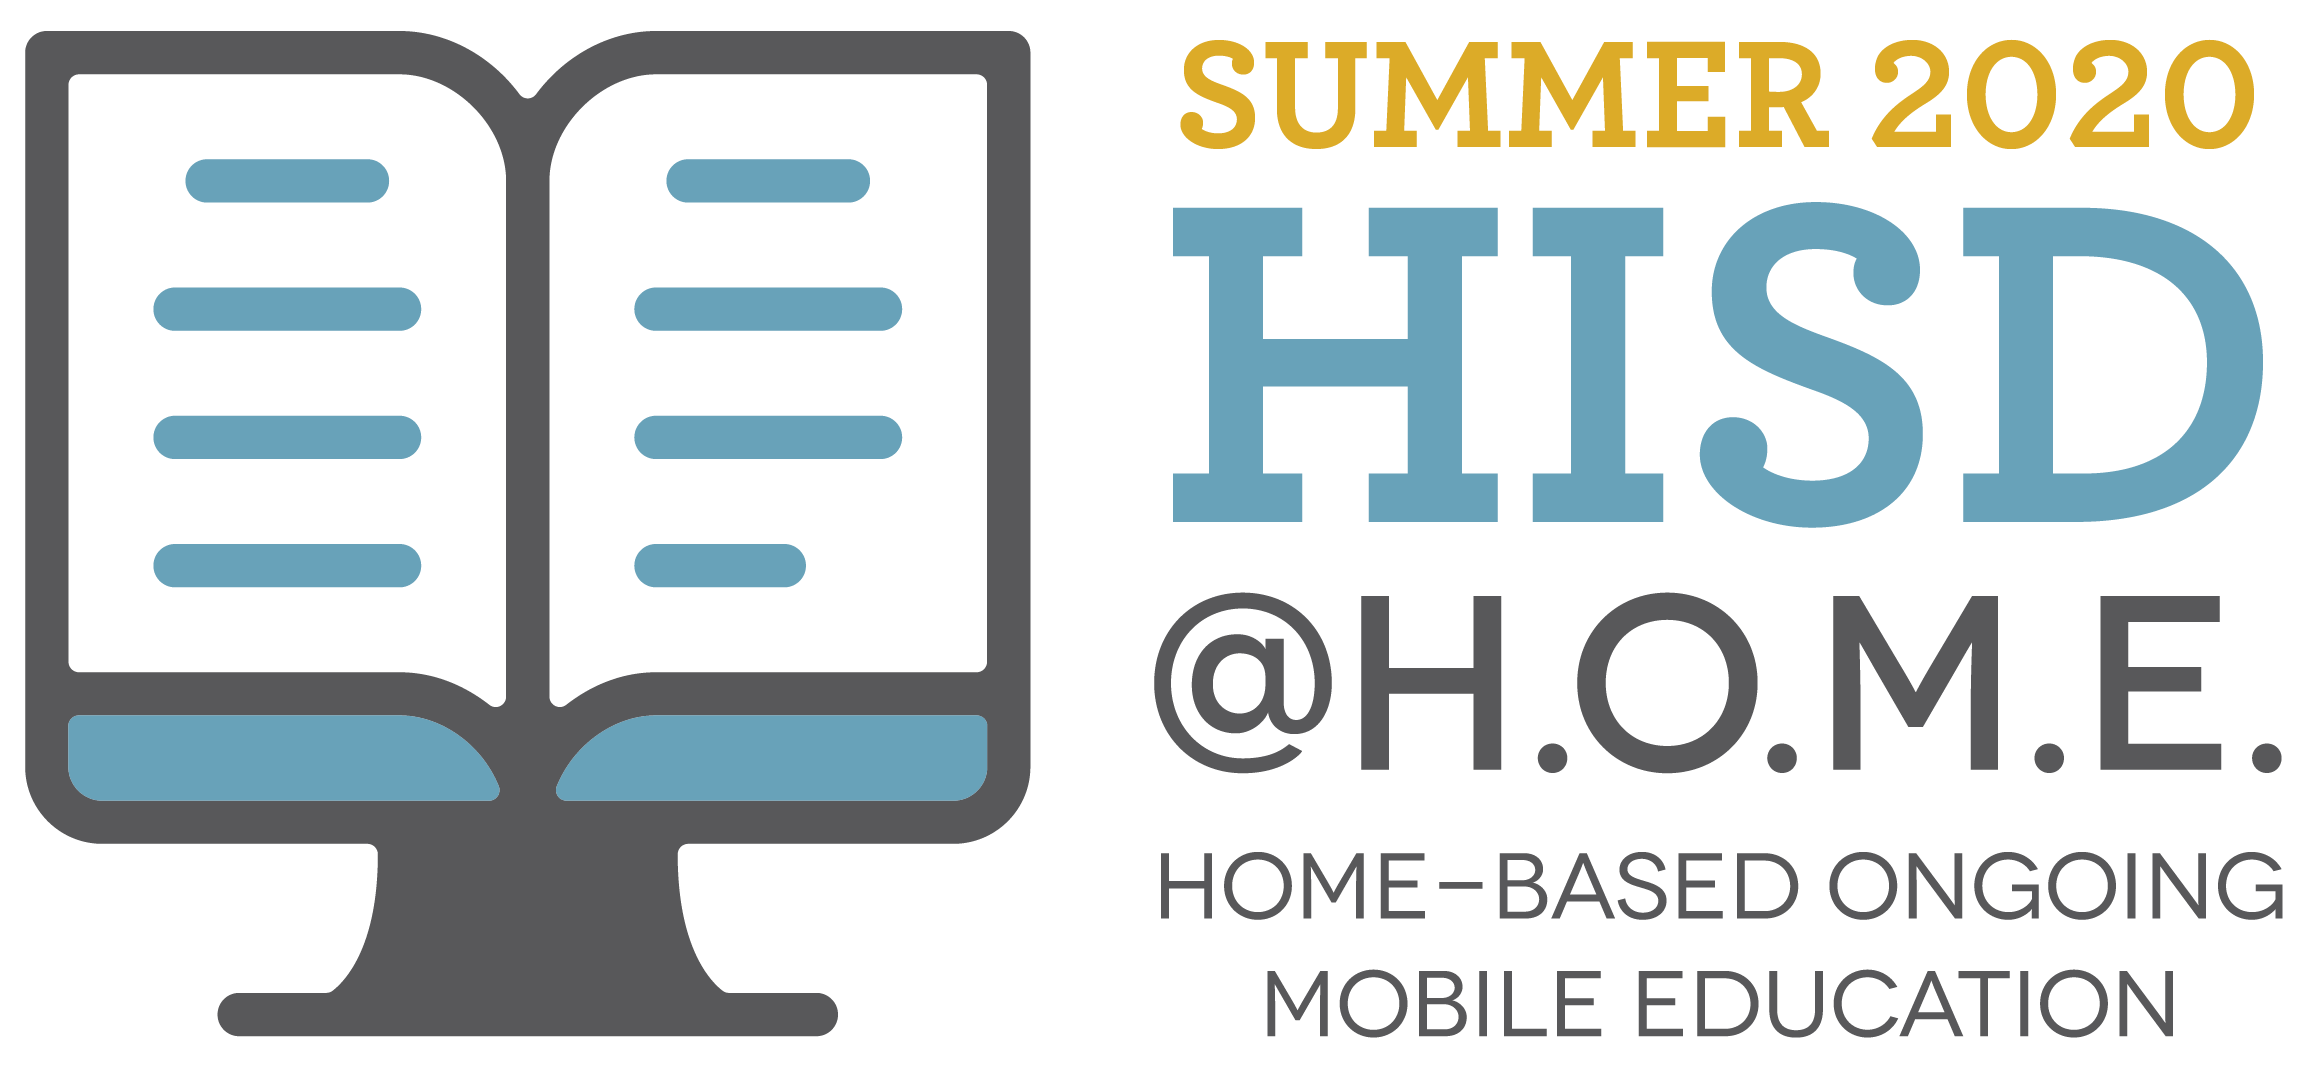 HISD @HOME Summer 2020